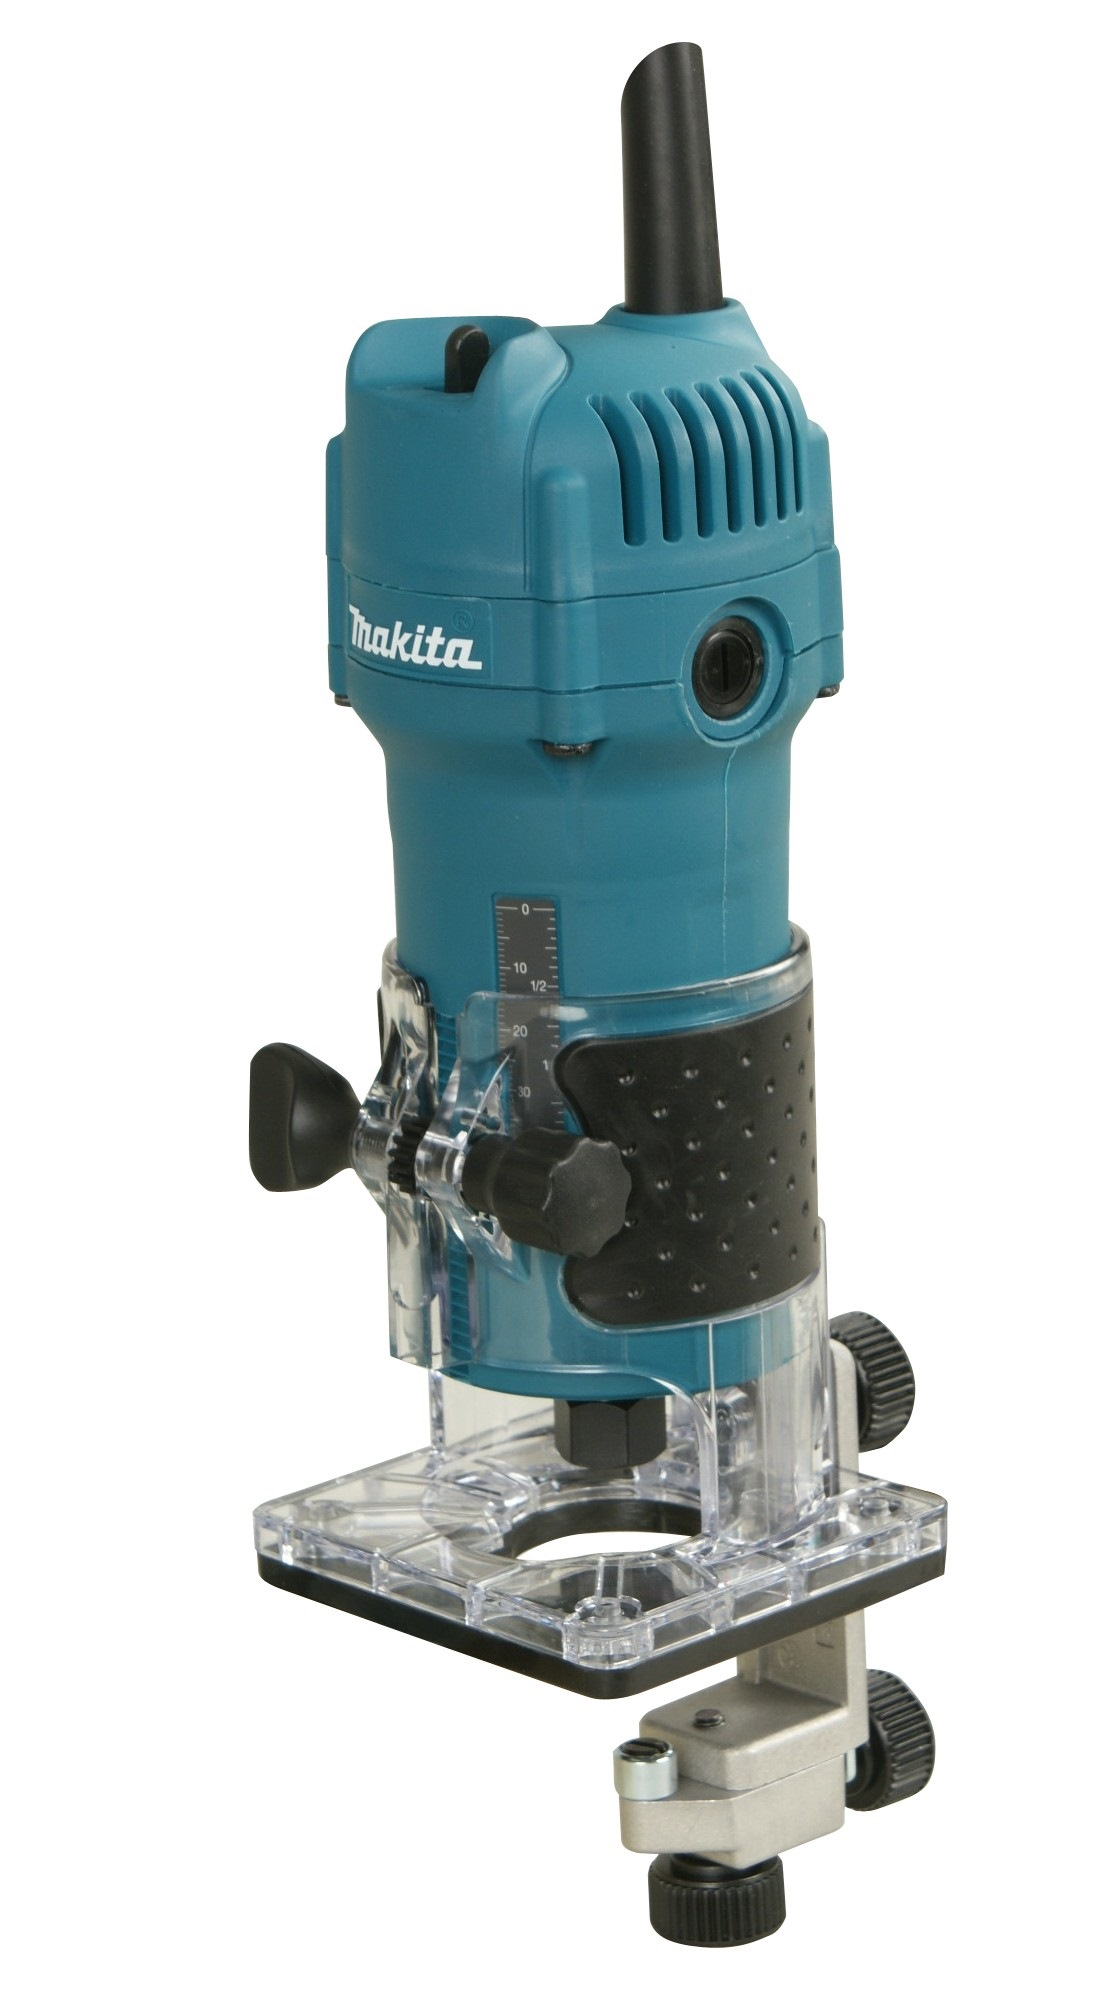 makita hand trimmer 530w 3709 corded planers routers horme singapore. Black Bedroom Furniture Sets. Home Design Ideas